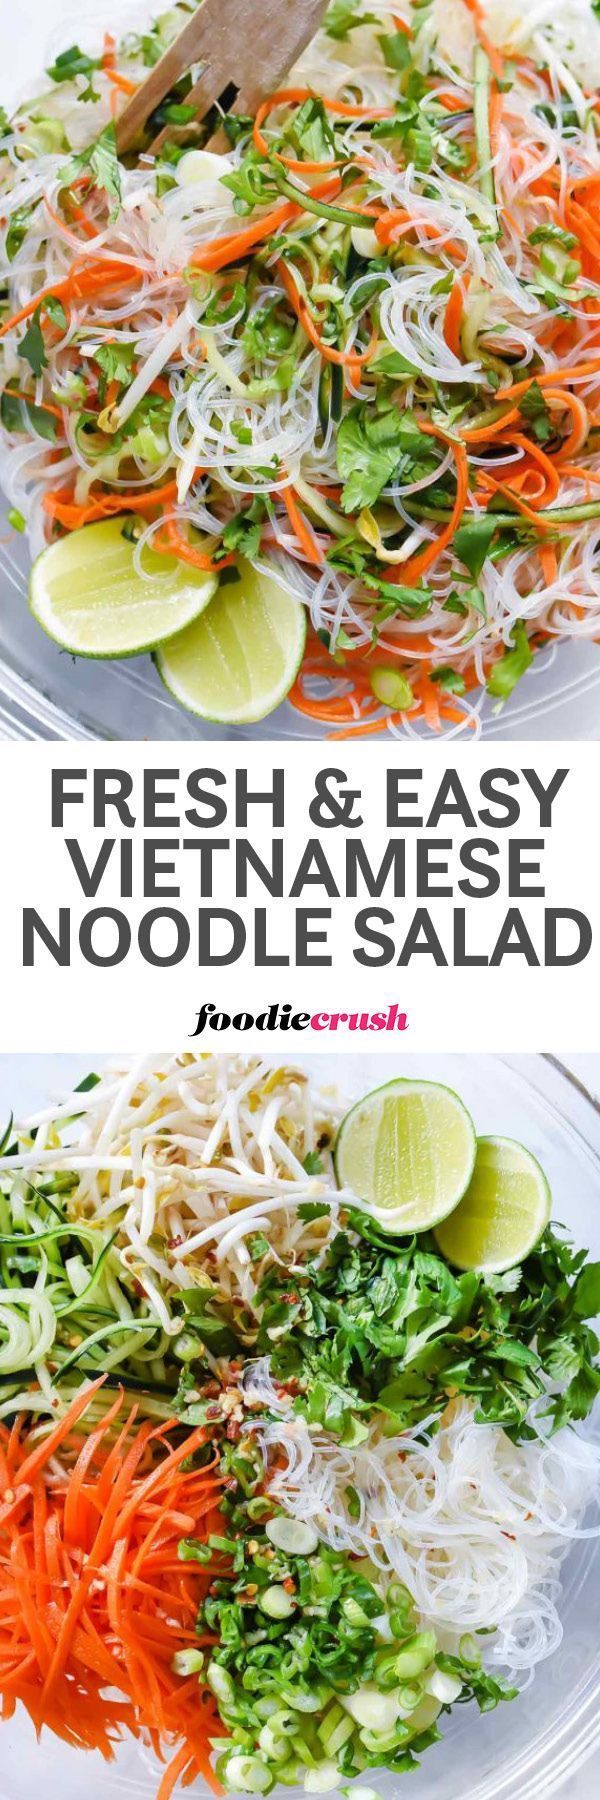 Fresh and Easy Vietnamese Noodle Salad Recipe | Spring Rolls Salad Recipe | Rice Noodle Salad Recipe | Vermicelli Noodle Recipe